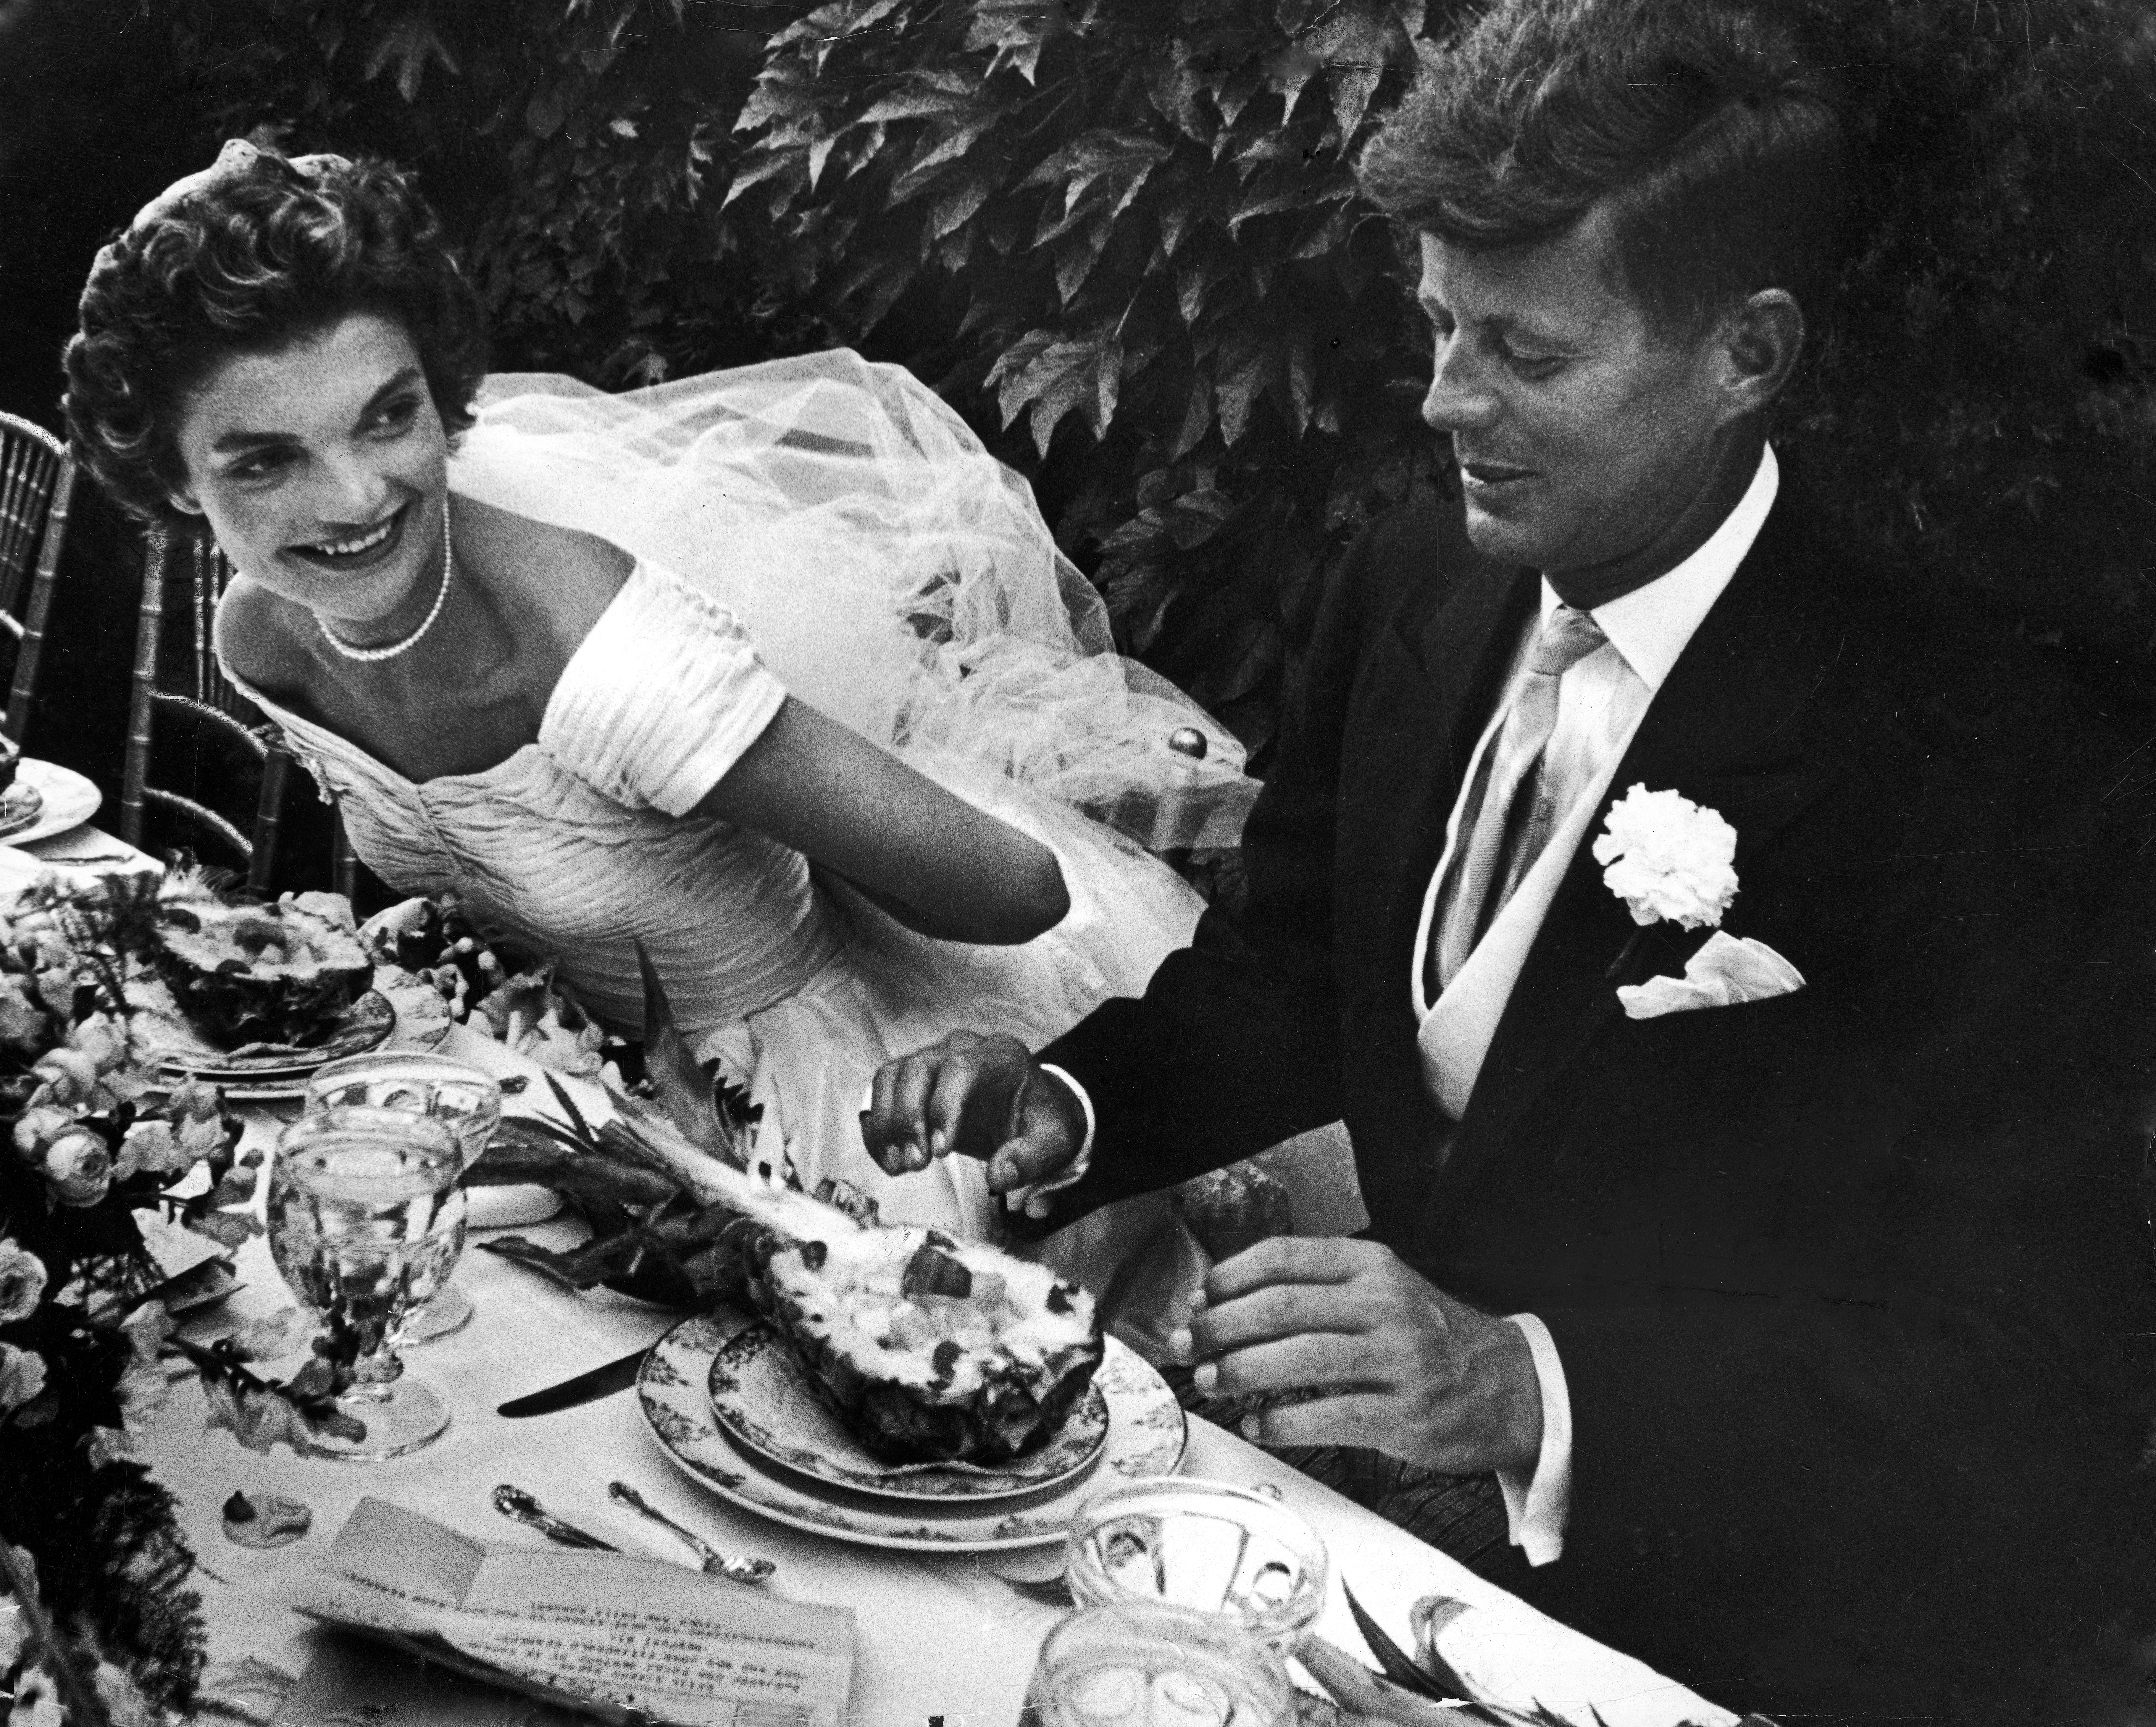 RHODE ISLAND, UNITED STATES - 1953: Senator John Kennedy & his bride Jacqueline in their wedding attire, as they sit down together at table to begin eating a pineapple salad at formally set table outdoors at their wedding reception. (Photo by Lisa Larsen/The LIFE Picture Collection/Getty Images)